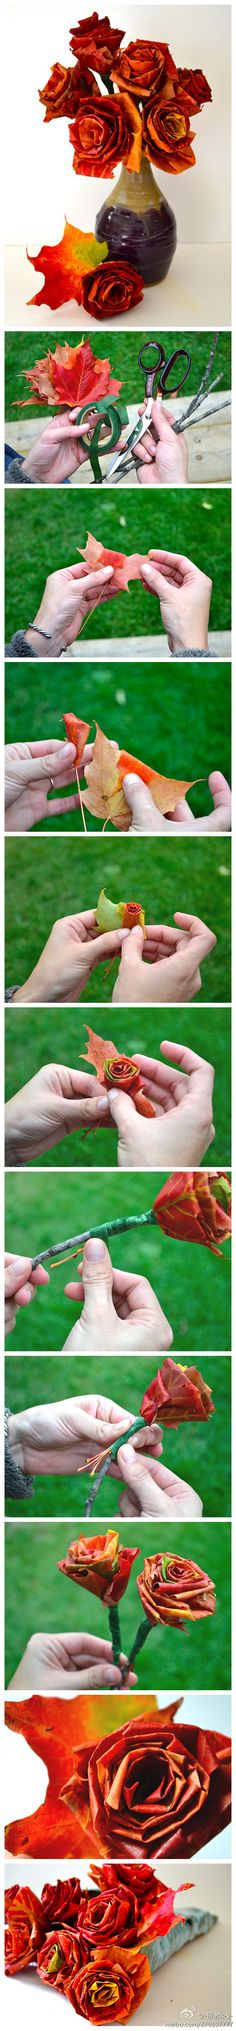 Create a rose with Maple Leaves!